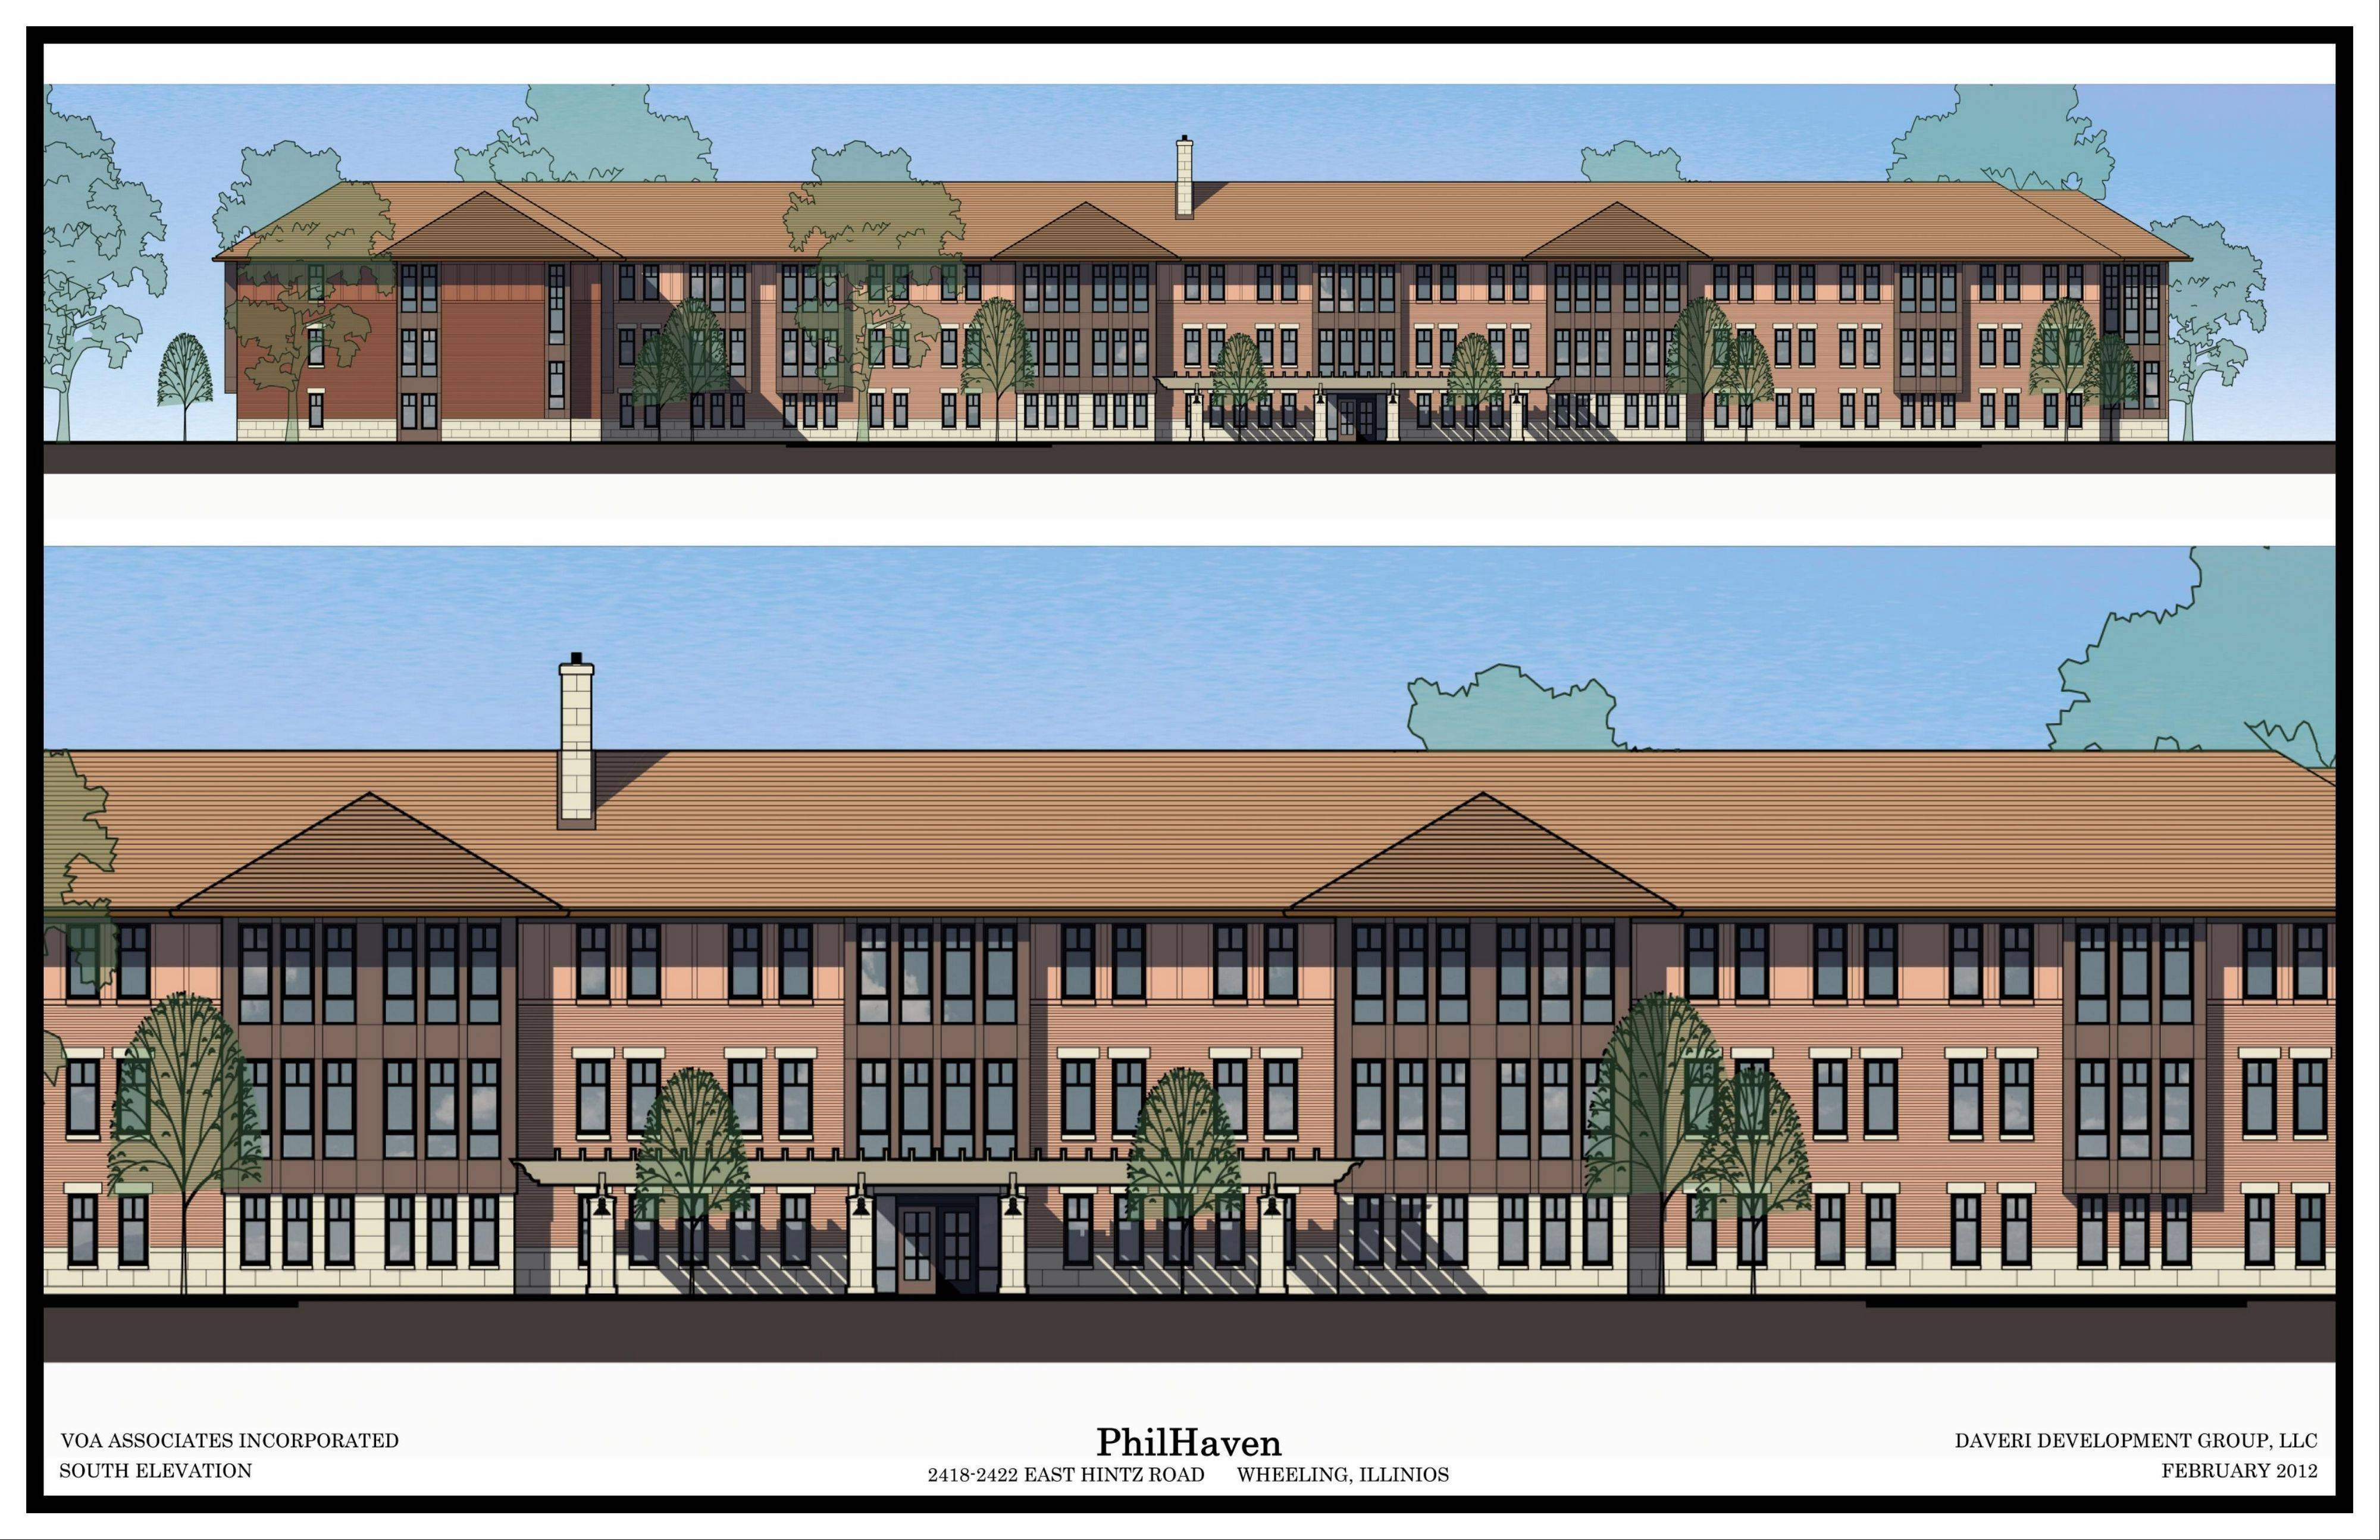 Wheeling rejects Philhaven development again